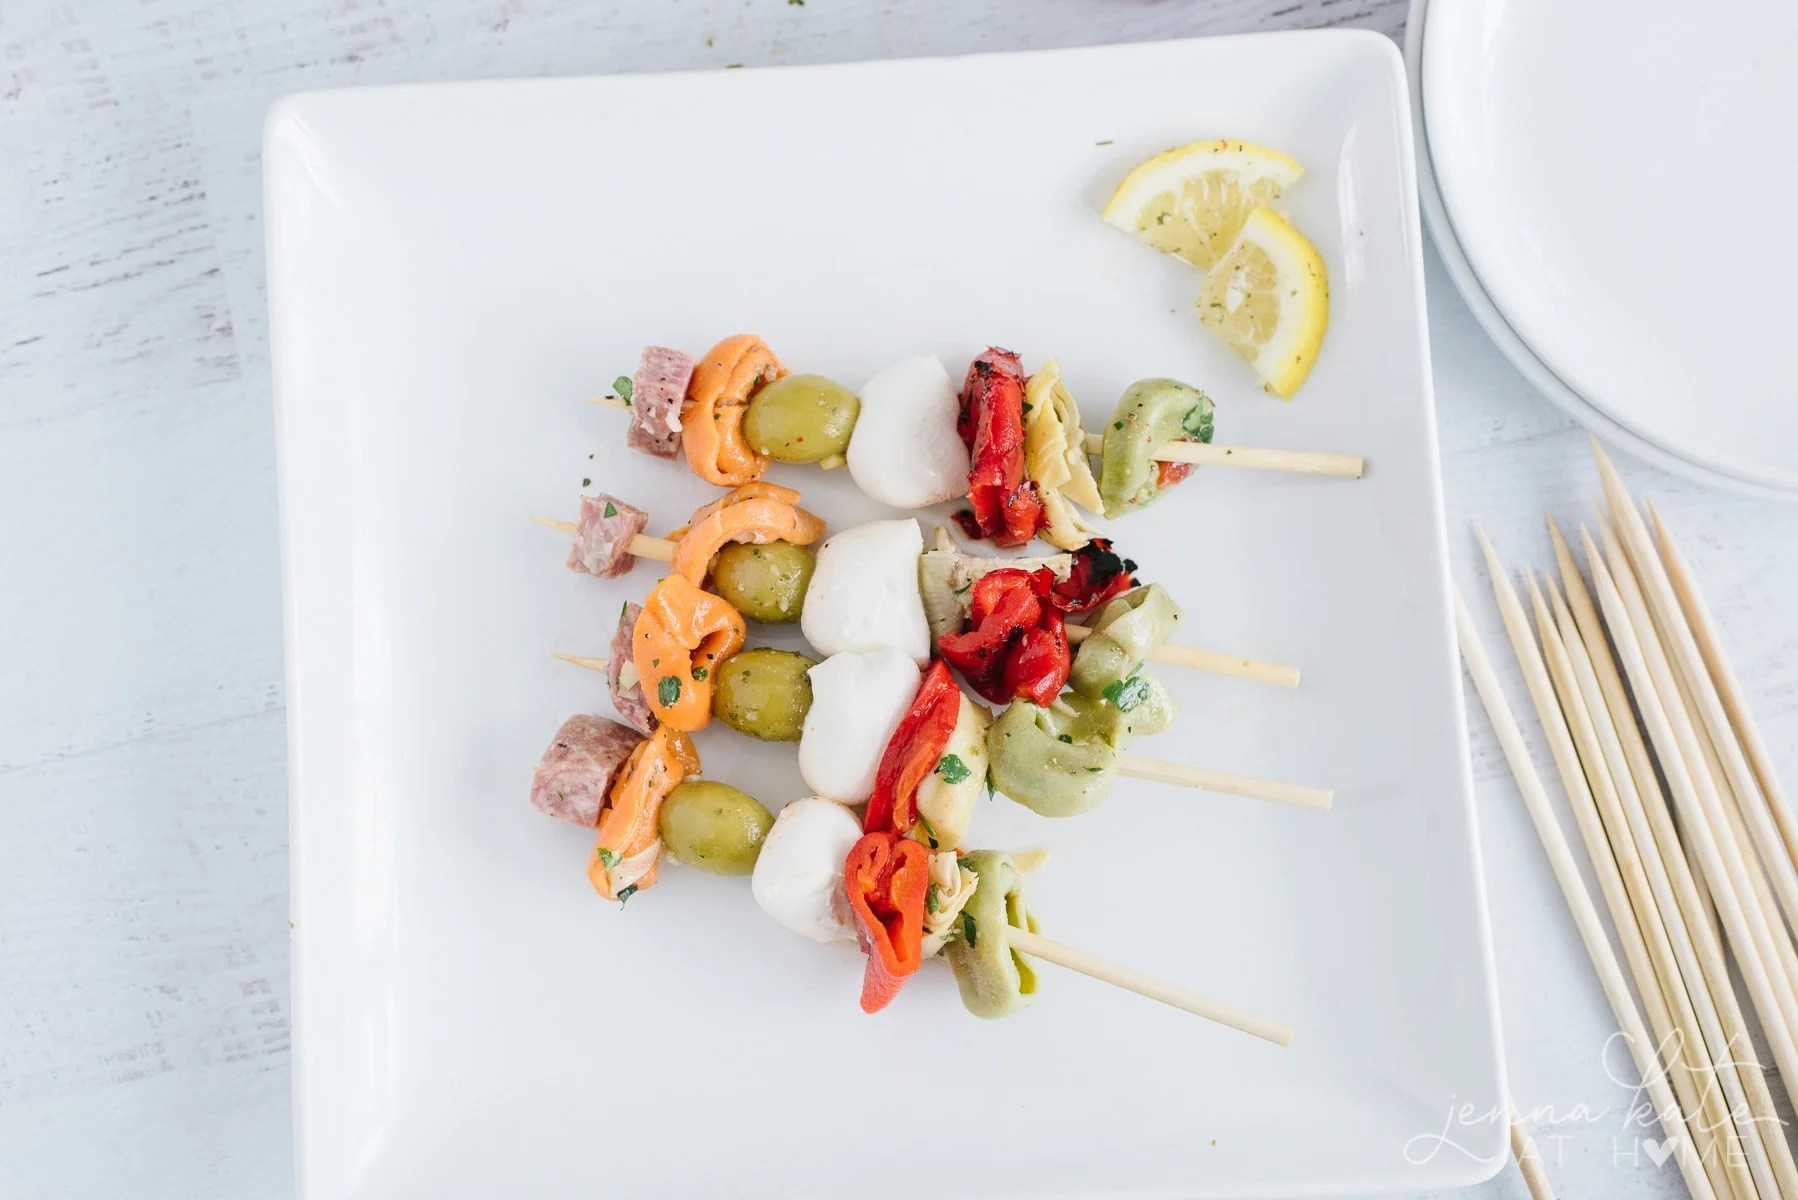 another shot of the skewers